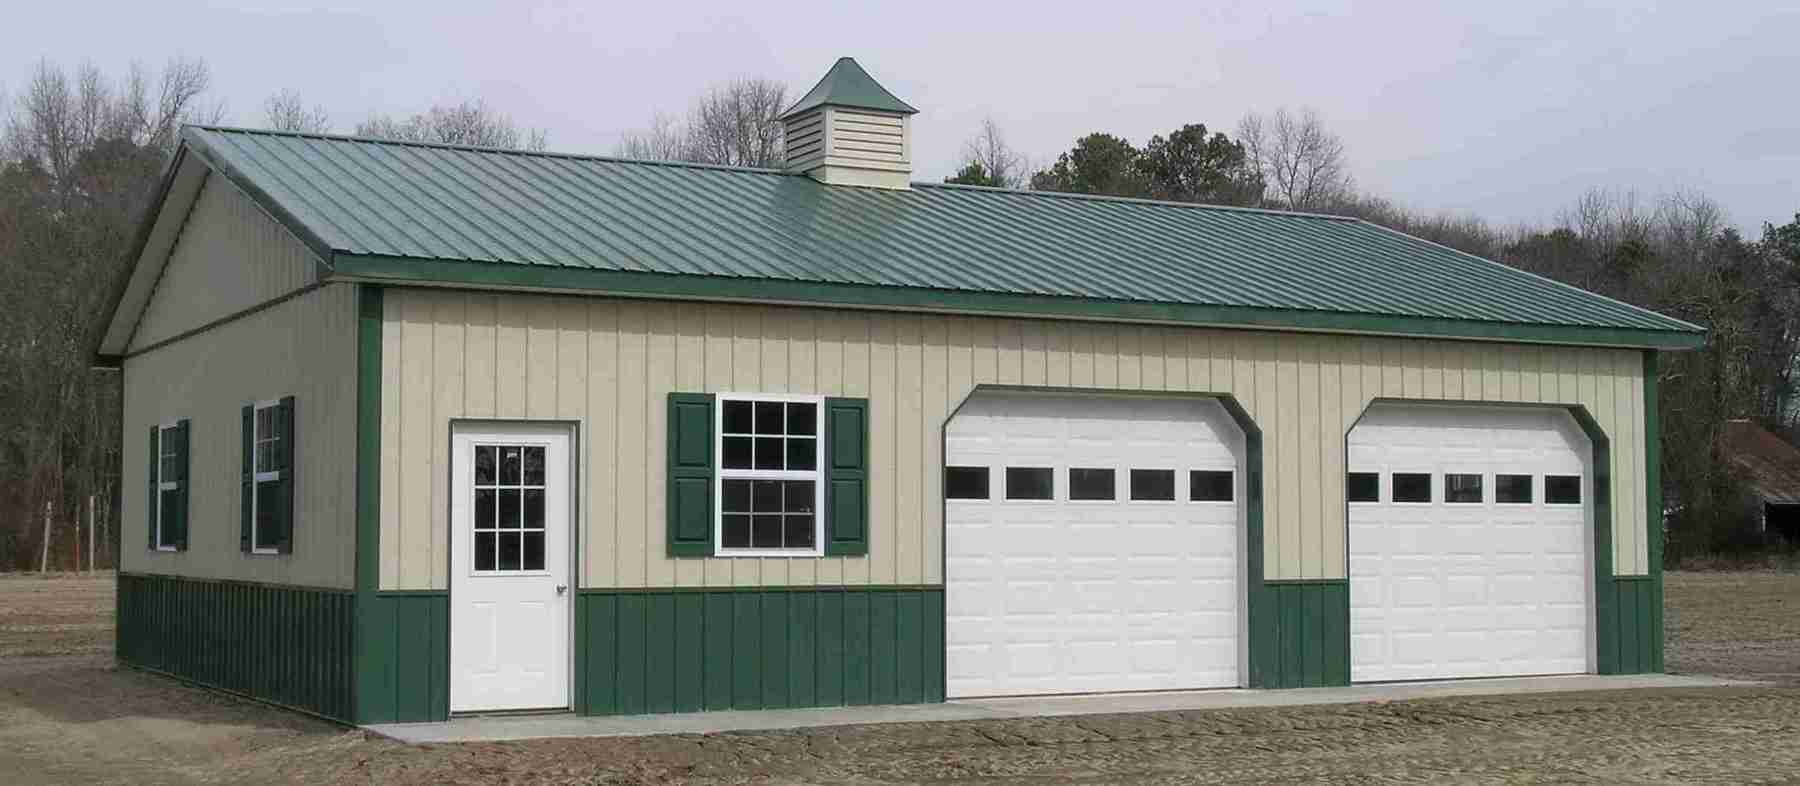 Menards pole barn kit joy studio design gallery best for Garage house kits